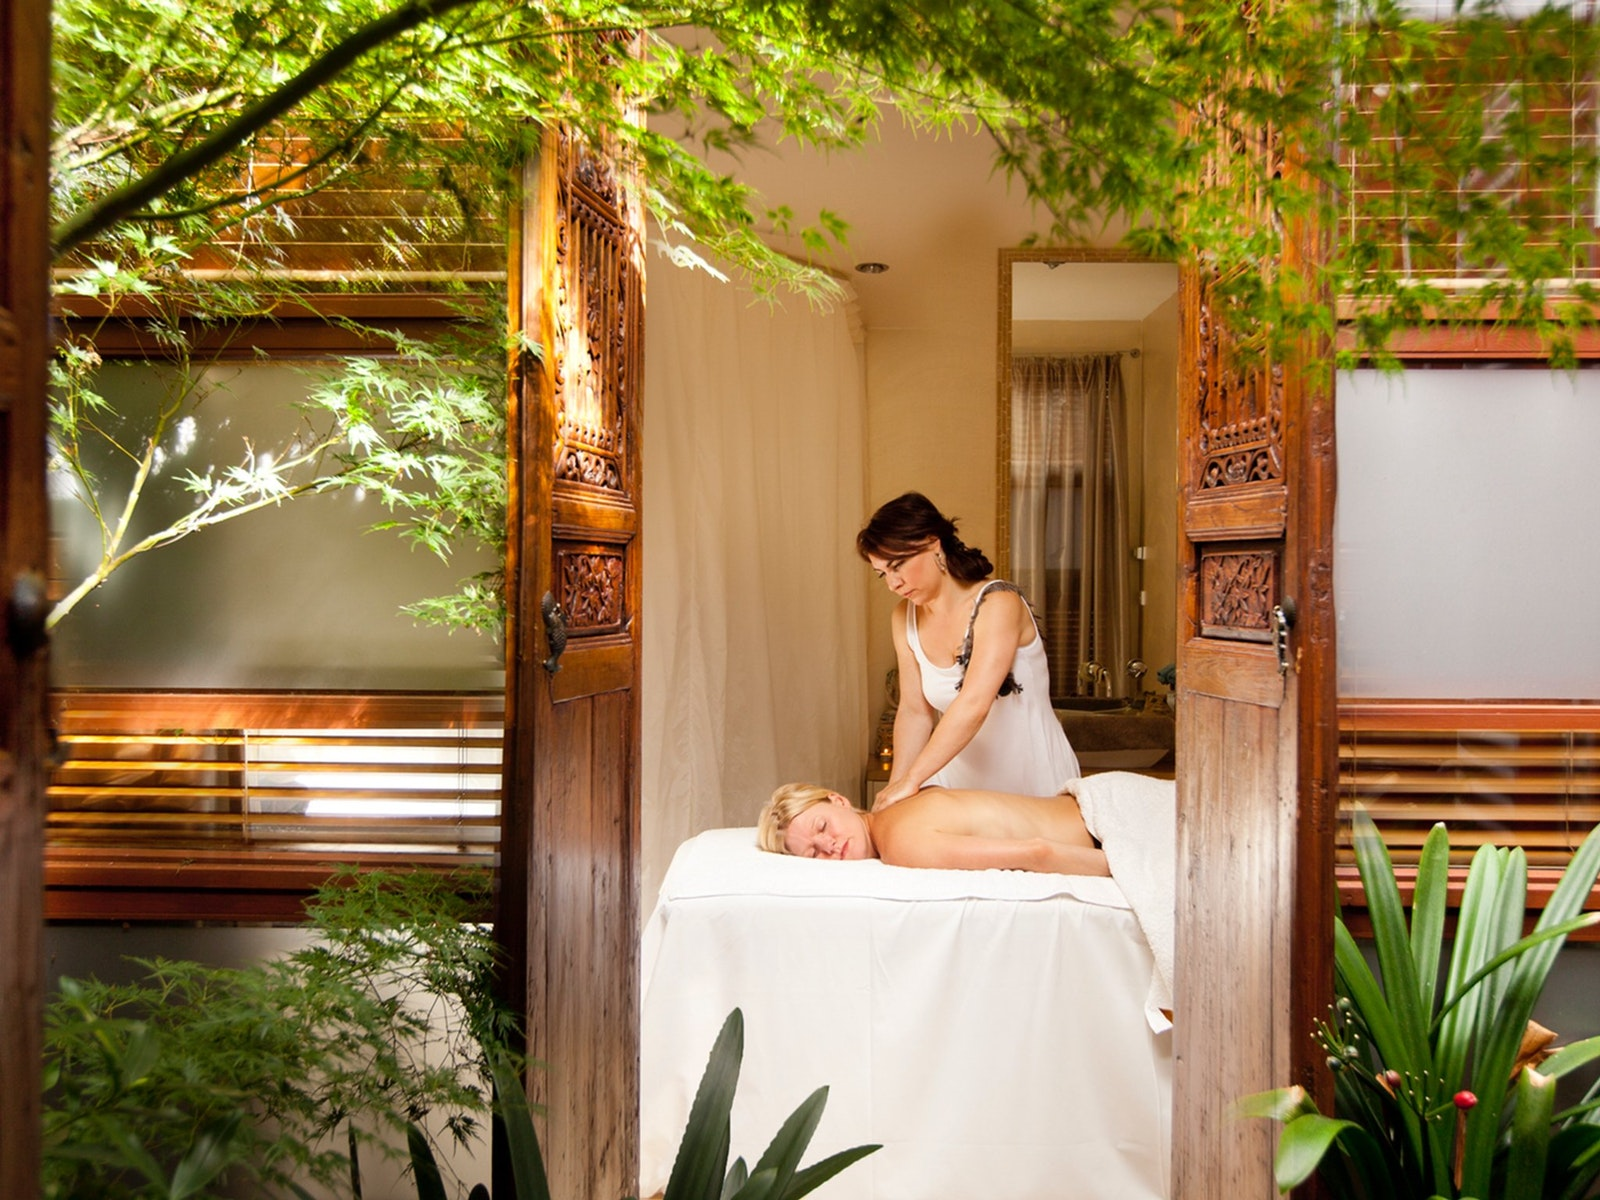 Enjoying your spa therapy